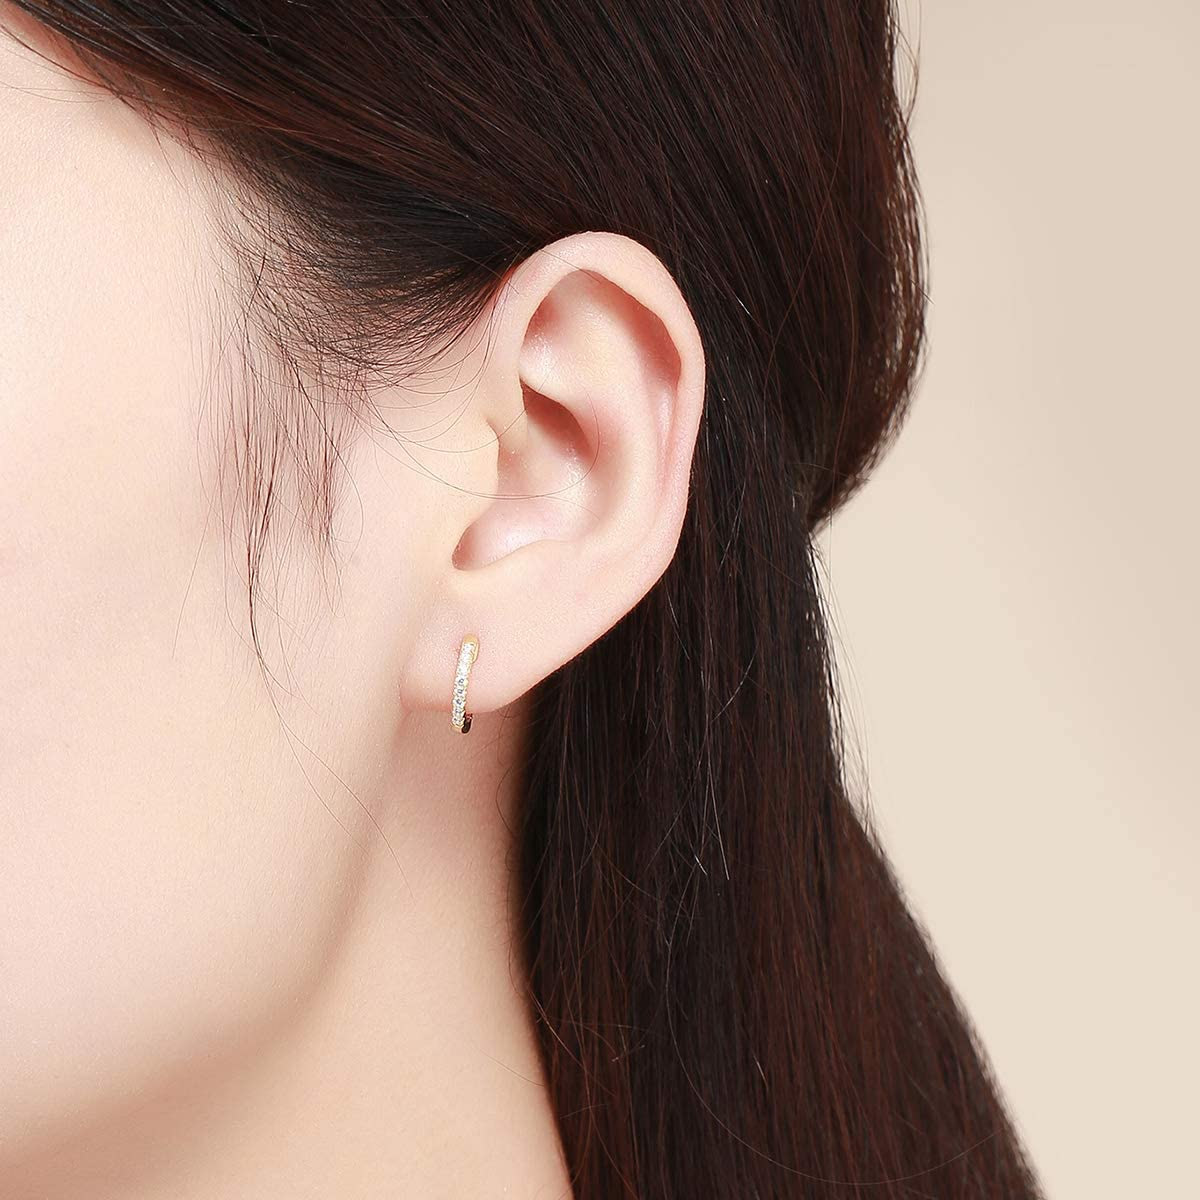 Huggie Hoop Earrings Sterling Silver Rose Gold Plated Ear Cuff Cubic Zirconia Christmas Gift for Women Girls